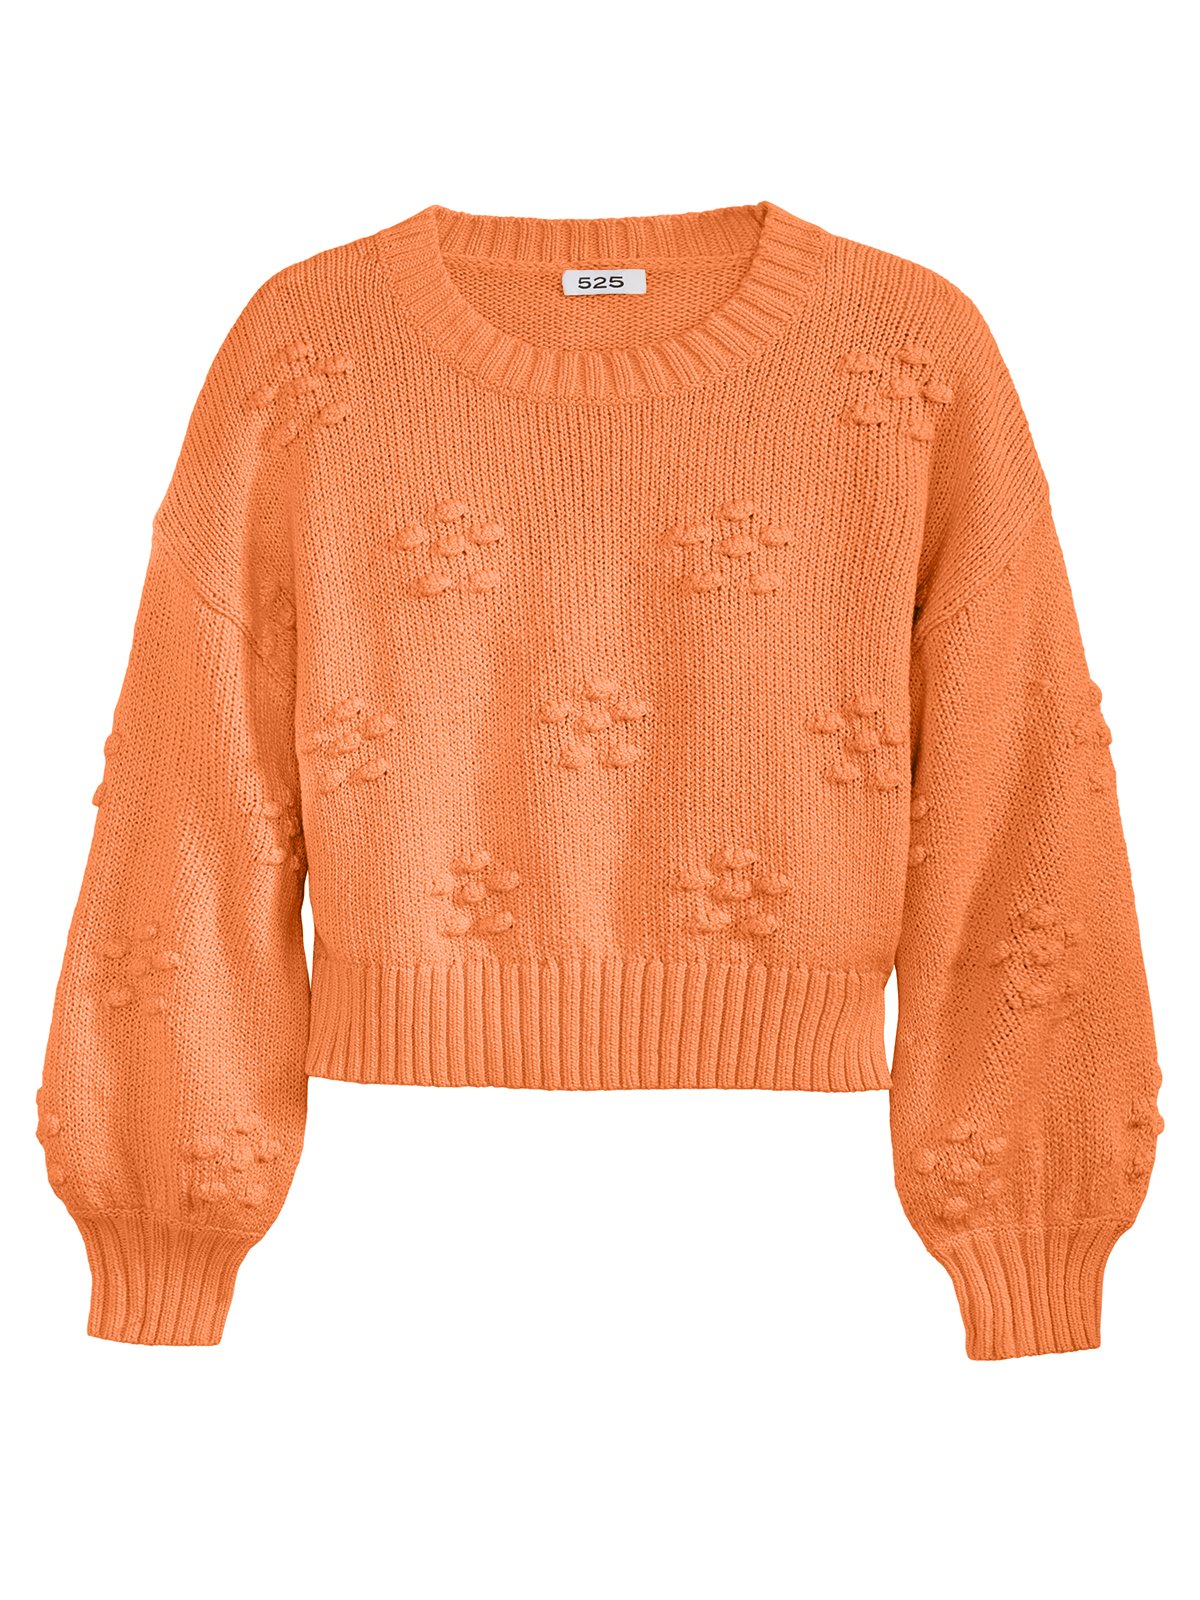 Flower Bobble Crewneck Sweater in Clementine